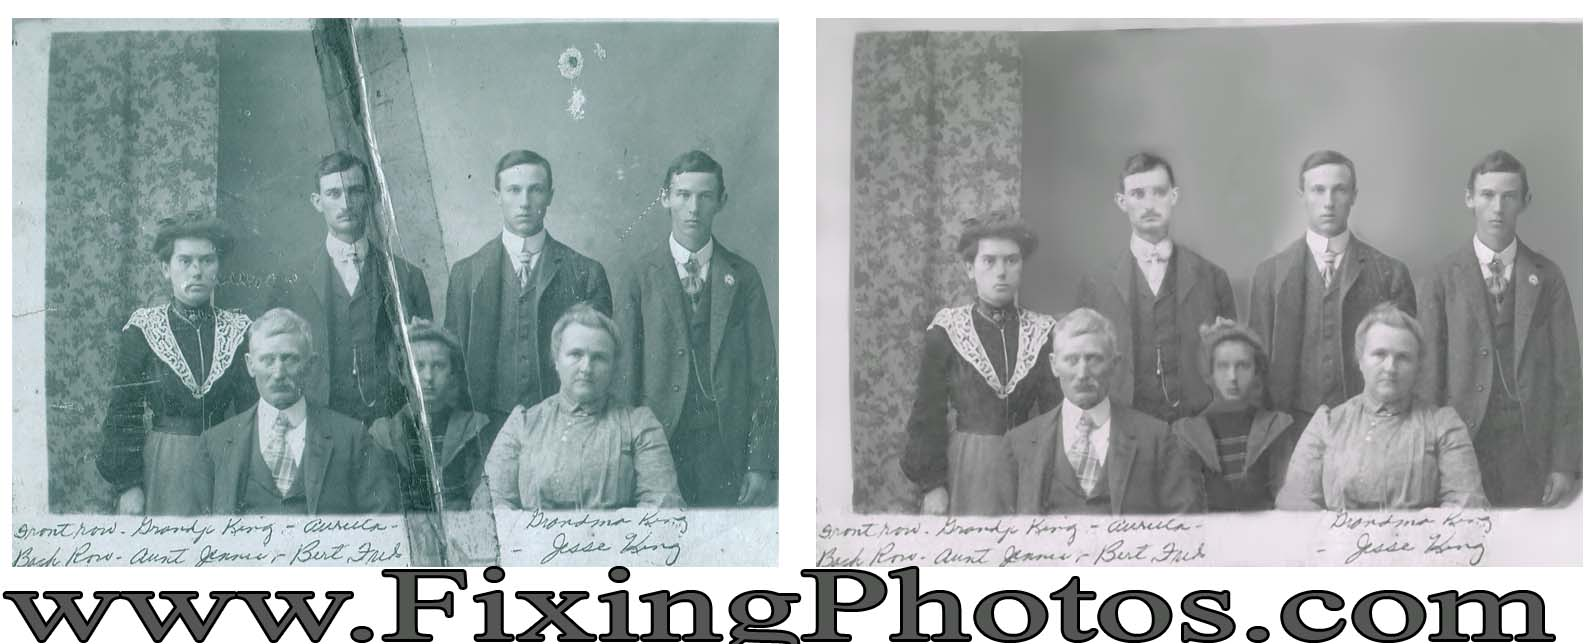 Photo Repair Wizards That Will Restore Your Baby Photos Visit us at www.fixingphotos.com For A Free Photo Repair Quote!